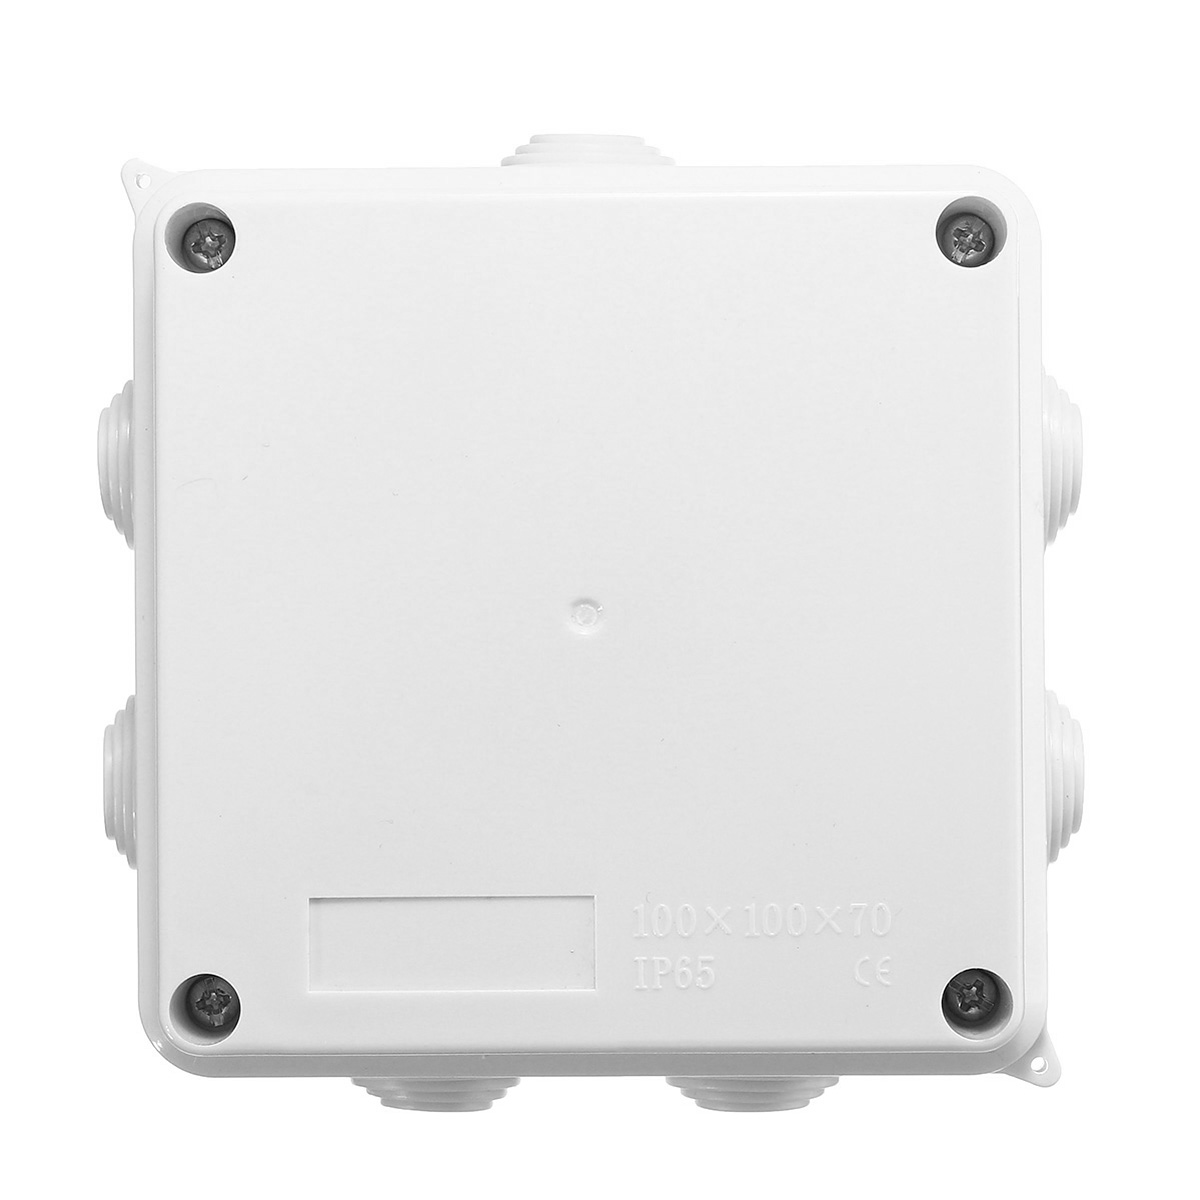 100x100x70mm Waterproof Ip65 Terminal Junction Project Box Outdoor Electrical Enclosure Case